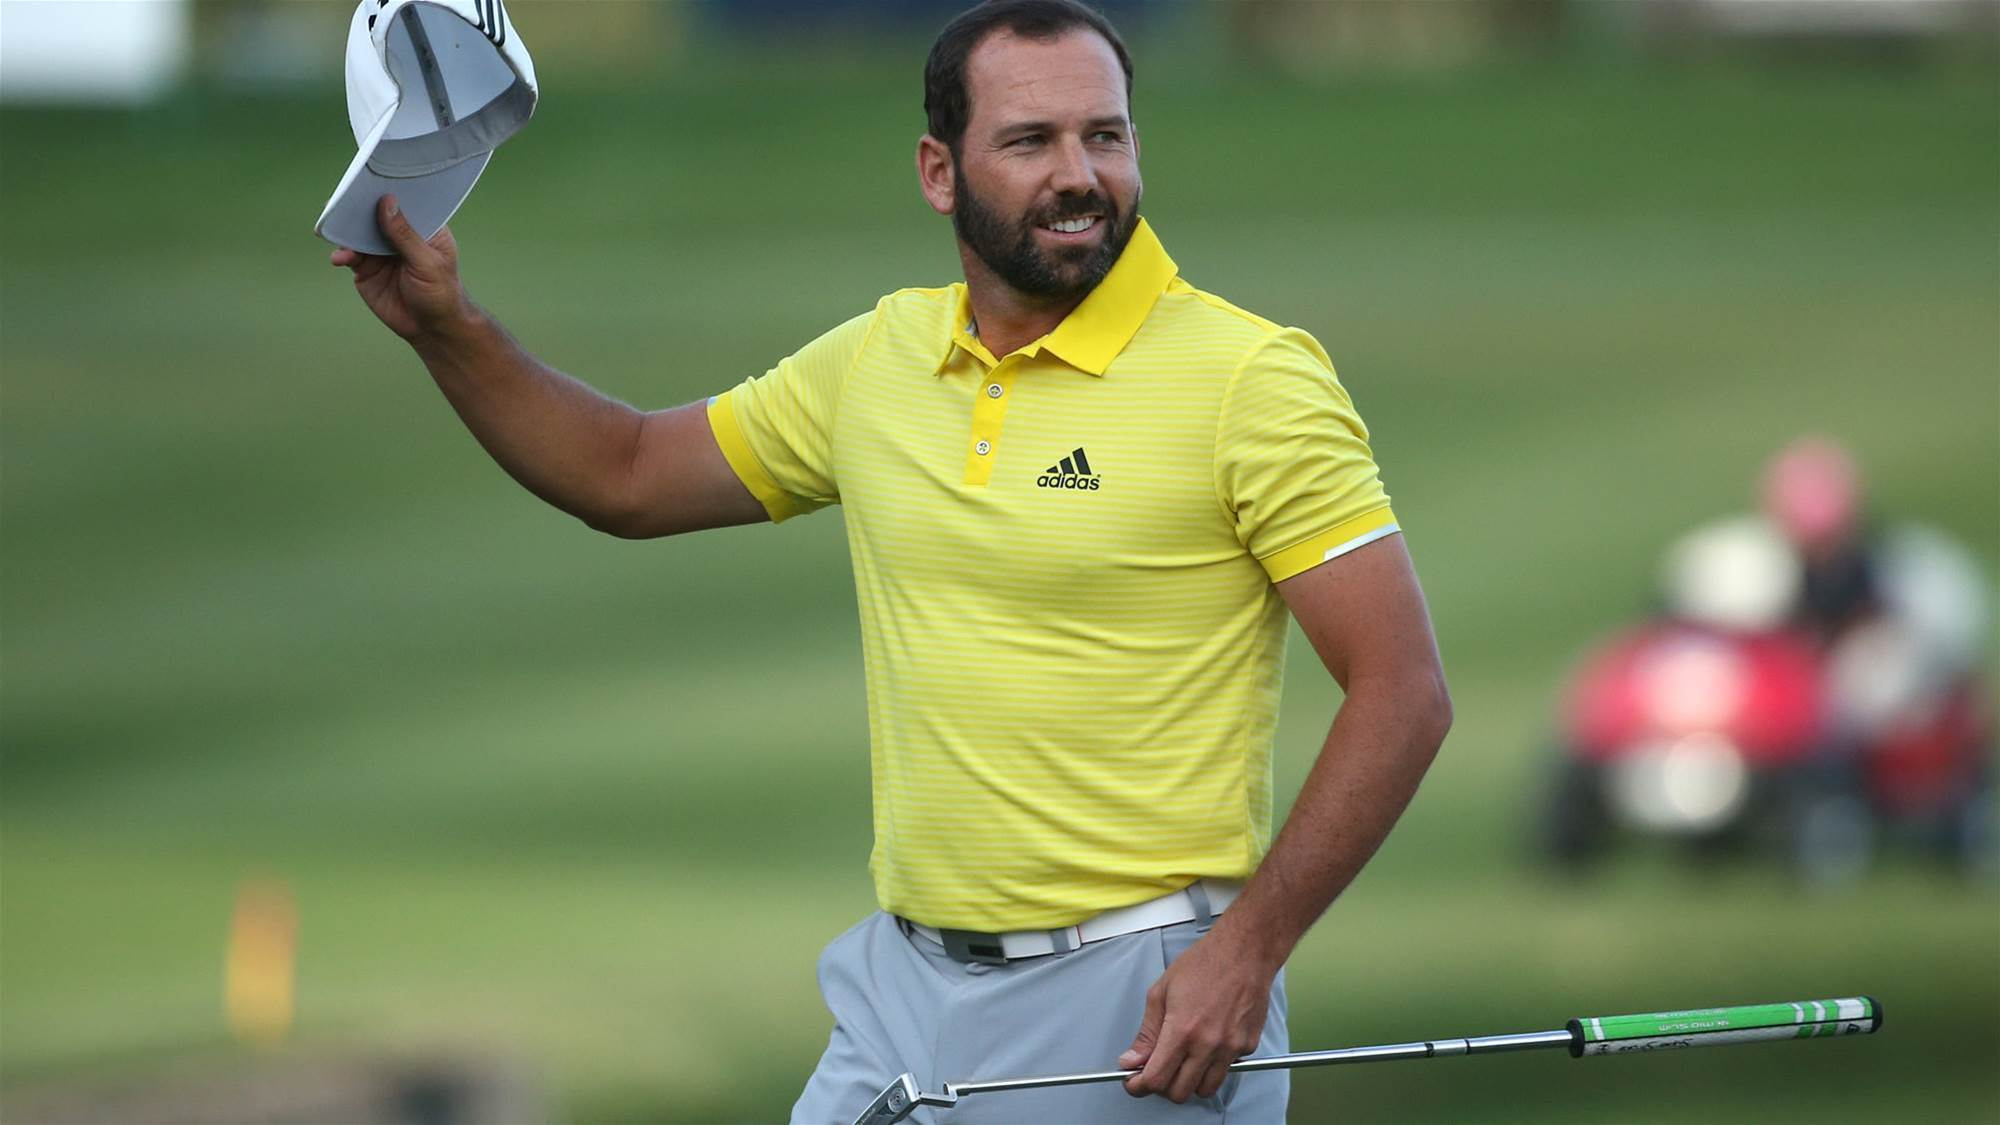 EURO TOUR: Victorious Sergio in love and thinking majors